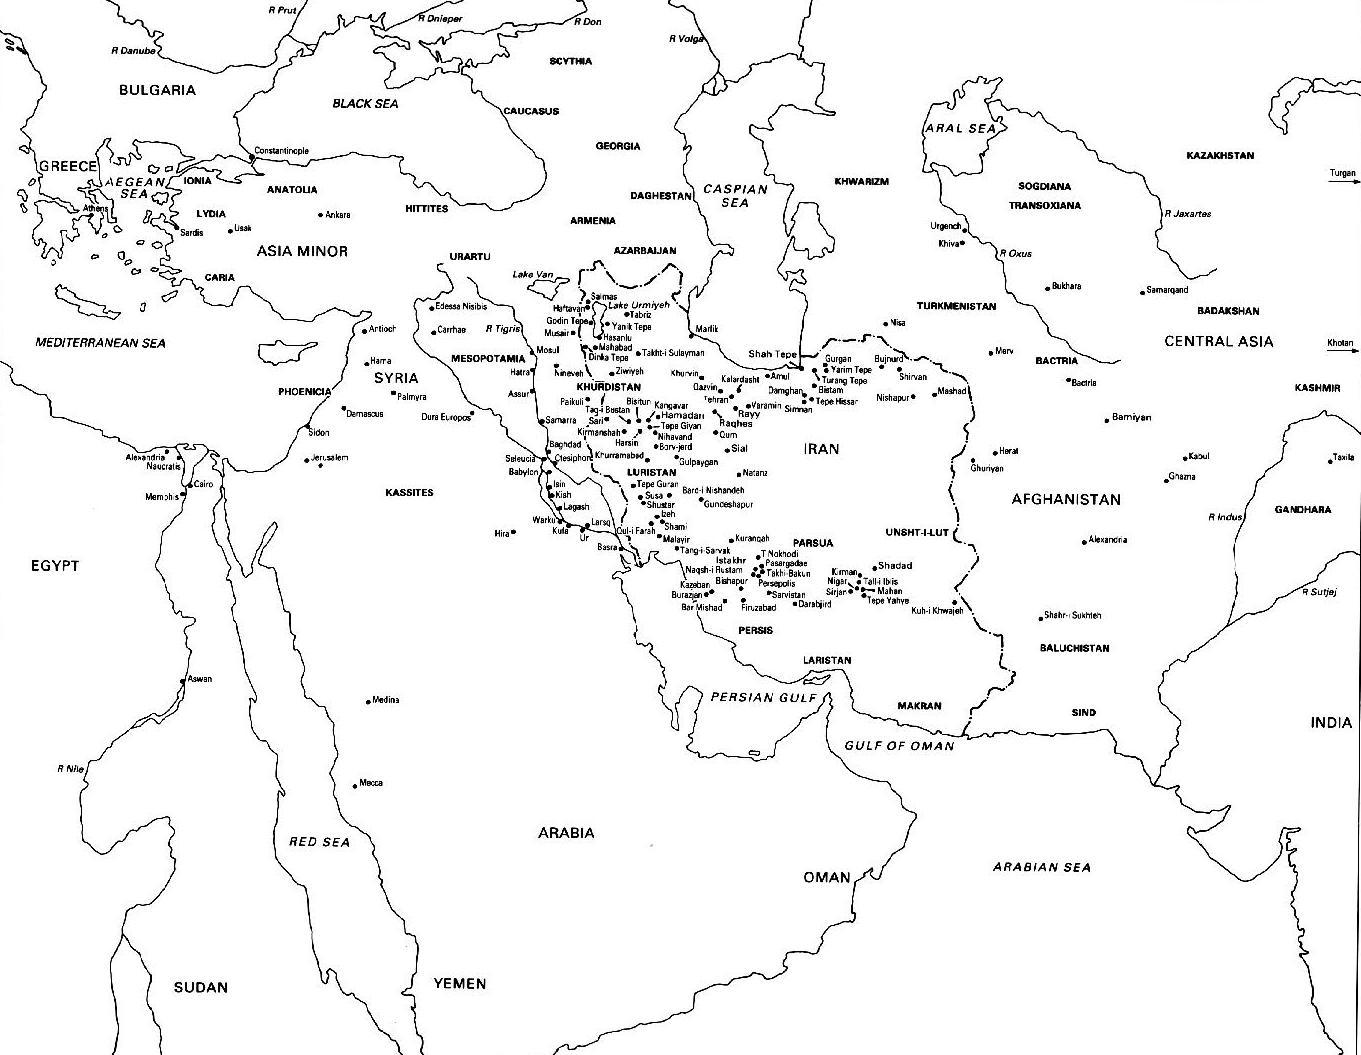 Colouring in world map - Ancient World Map Ancient Places And Or Civilizations Geography World History